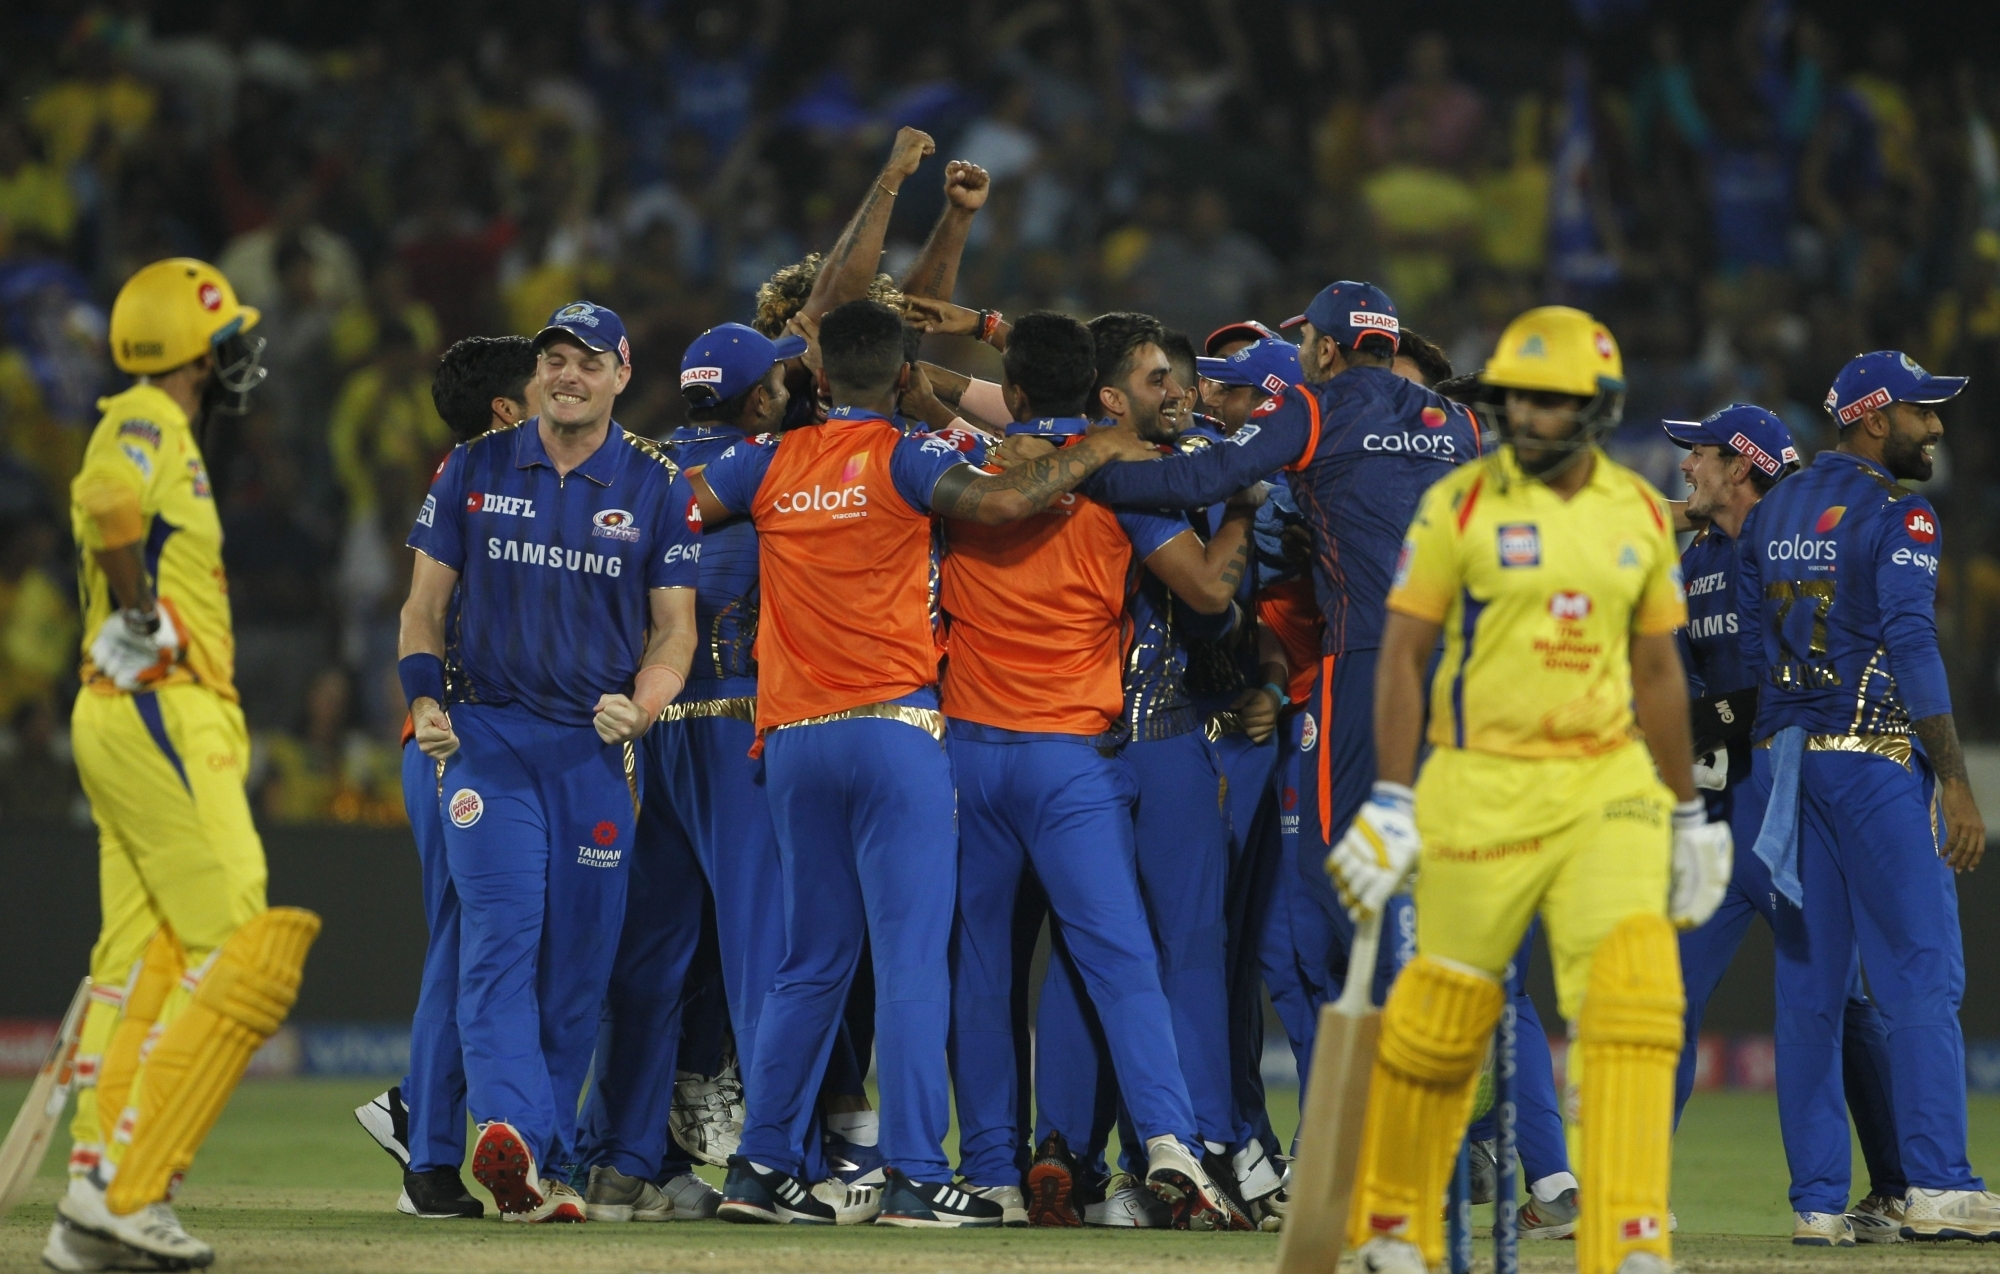 Ipl 2019 Shardul Thakur Reflects Back At His Last Ball Dismissal In The Ipl Final